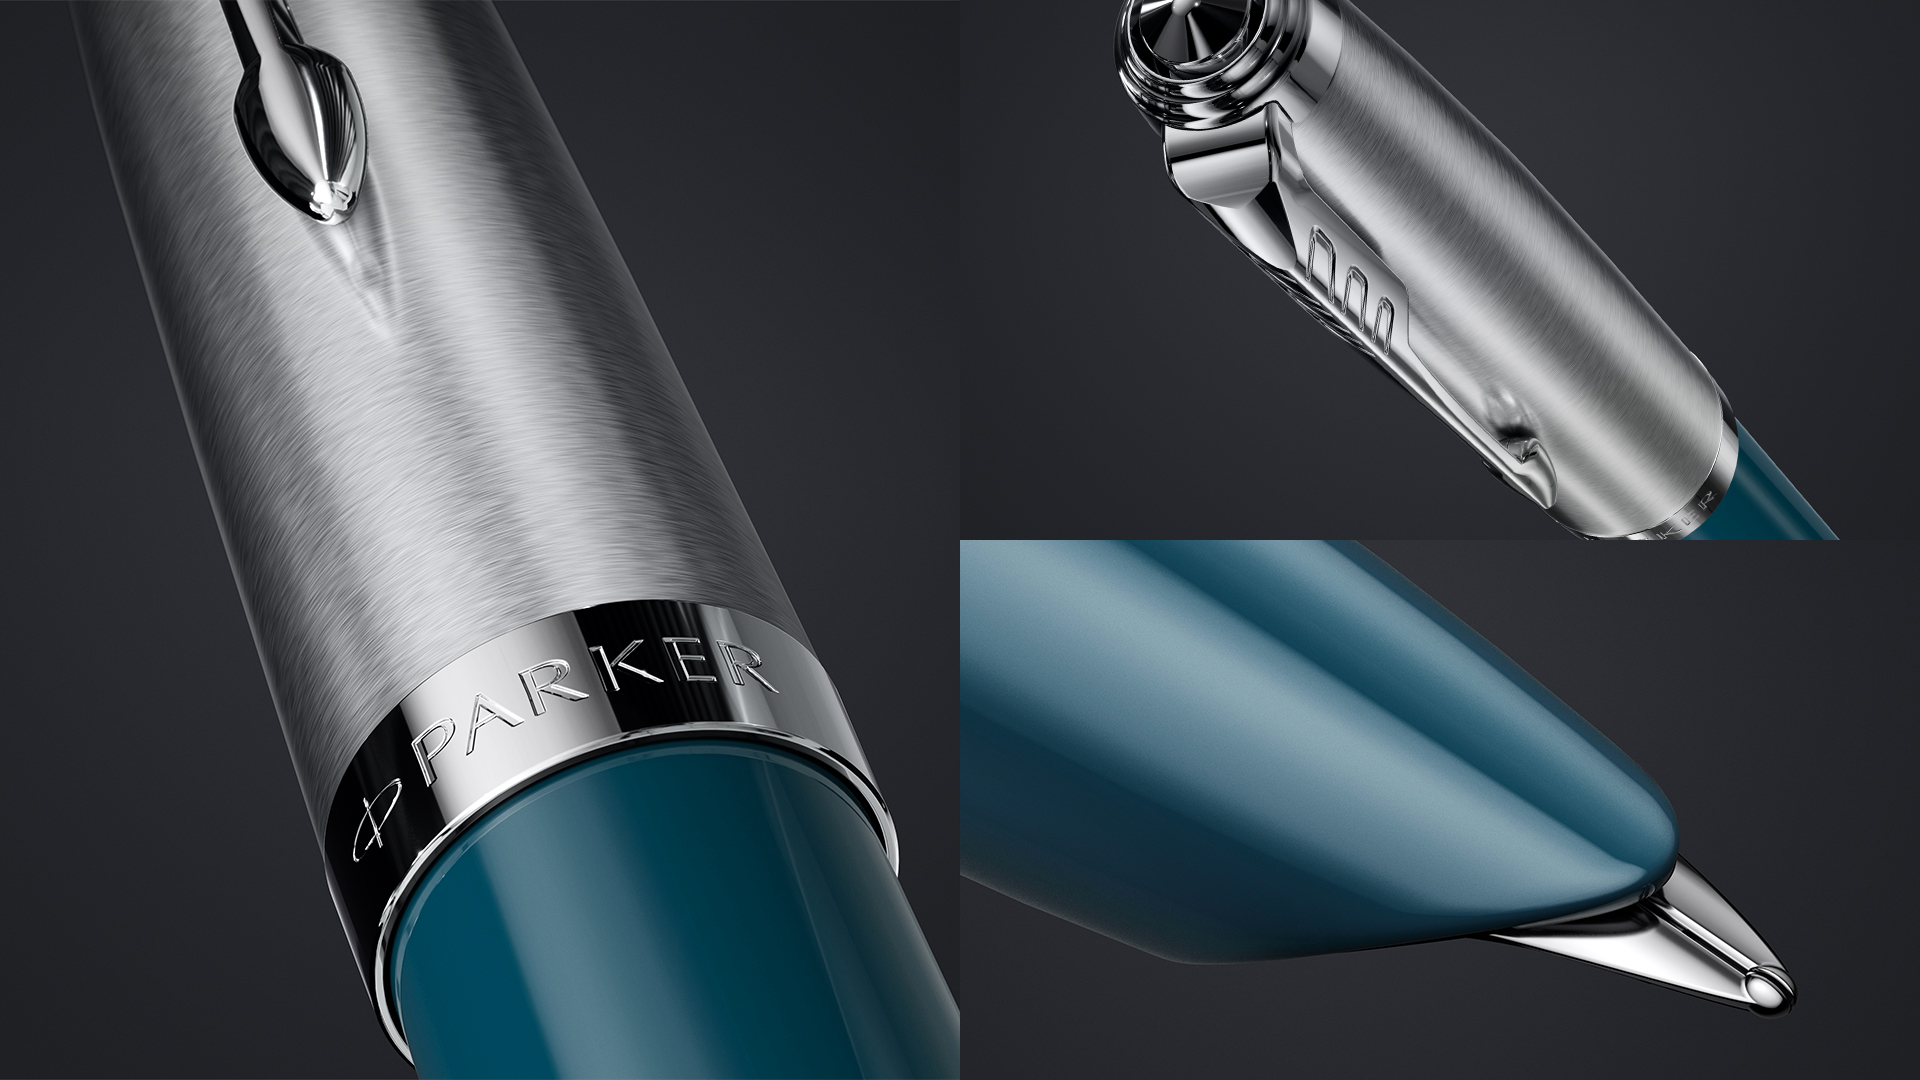 The iconic hooded nib of Parker 51 Teal Blue